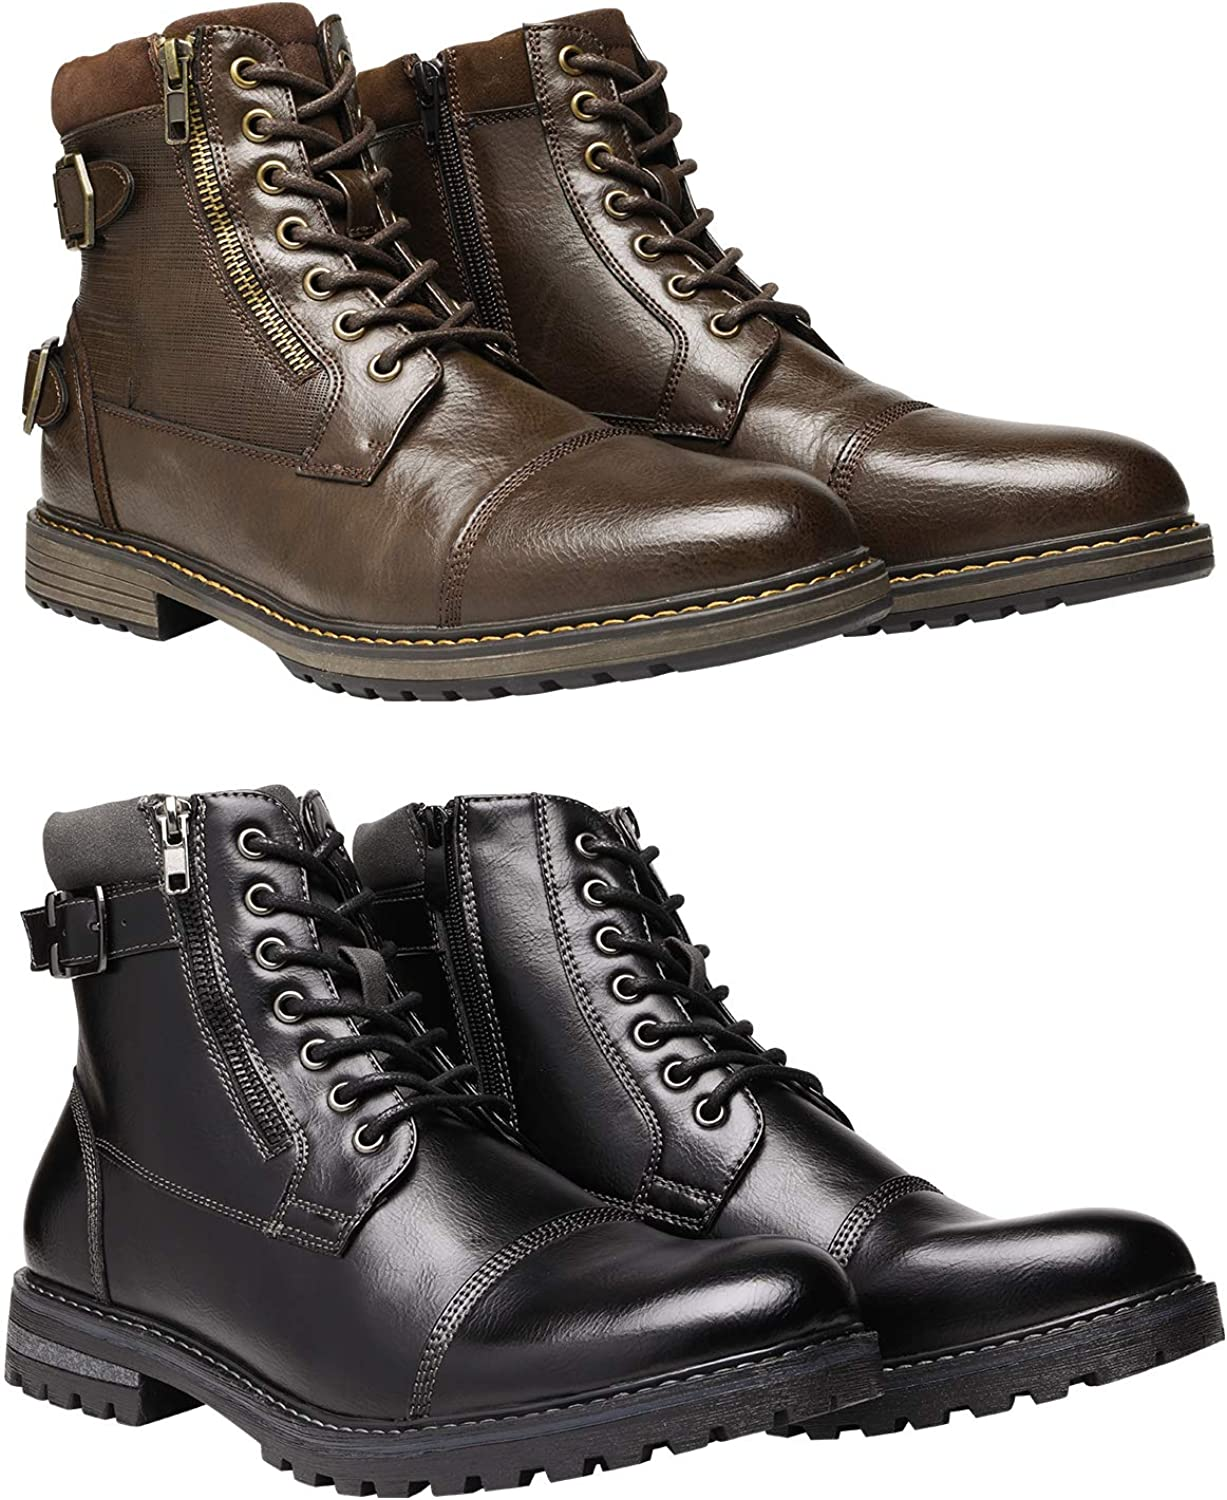 Bruno Marc Men's Motorcycle Boots Bundle with Men's Oxford Boots Size 7